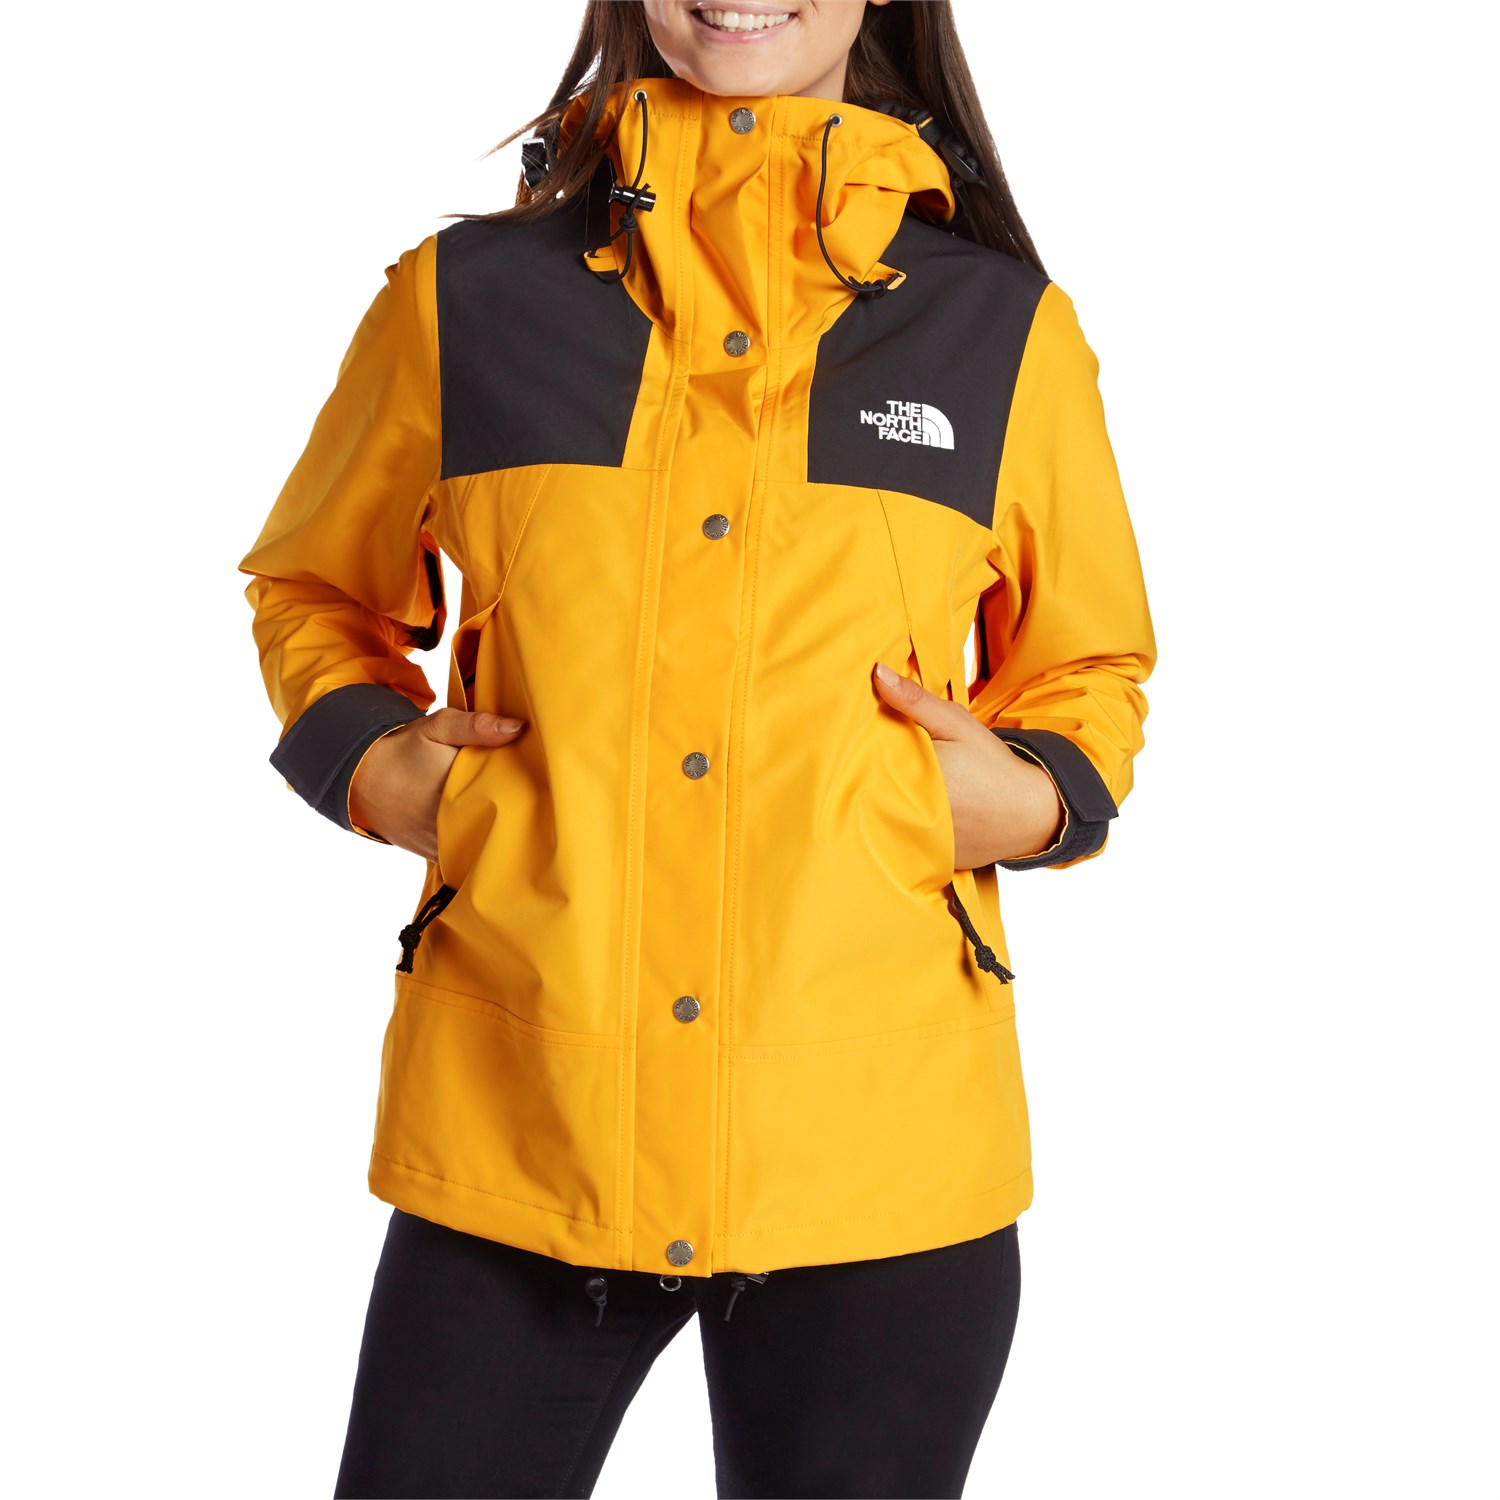 1e9809ca4 The North Face 1990 Mountain GORE-TEX® Jacket - Women's